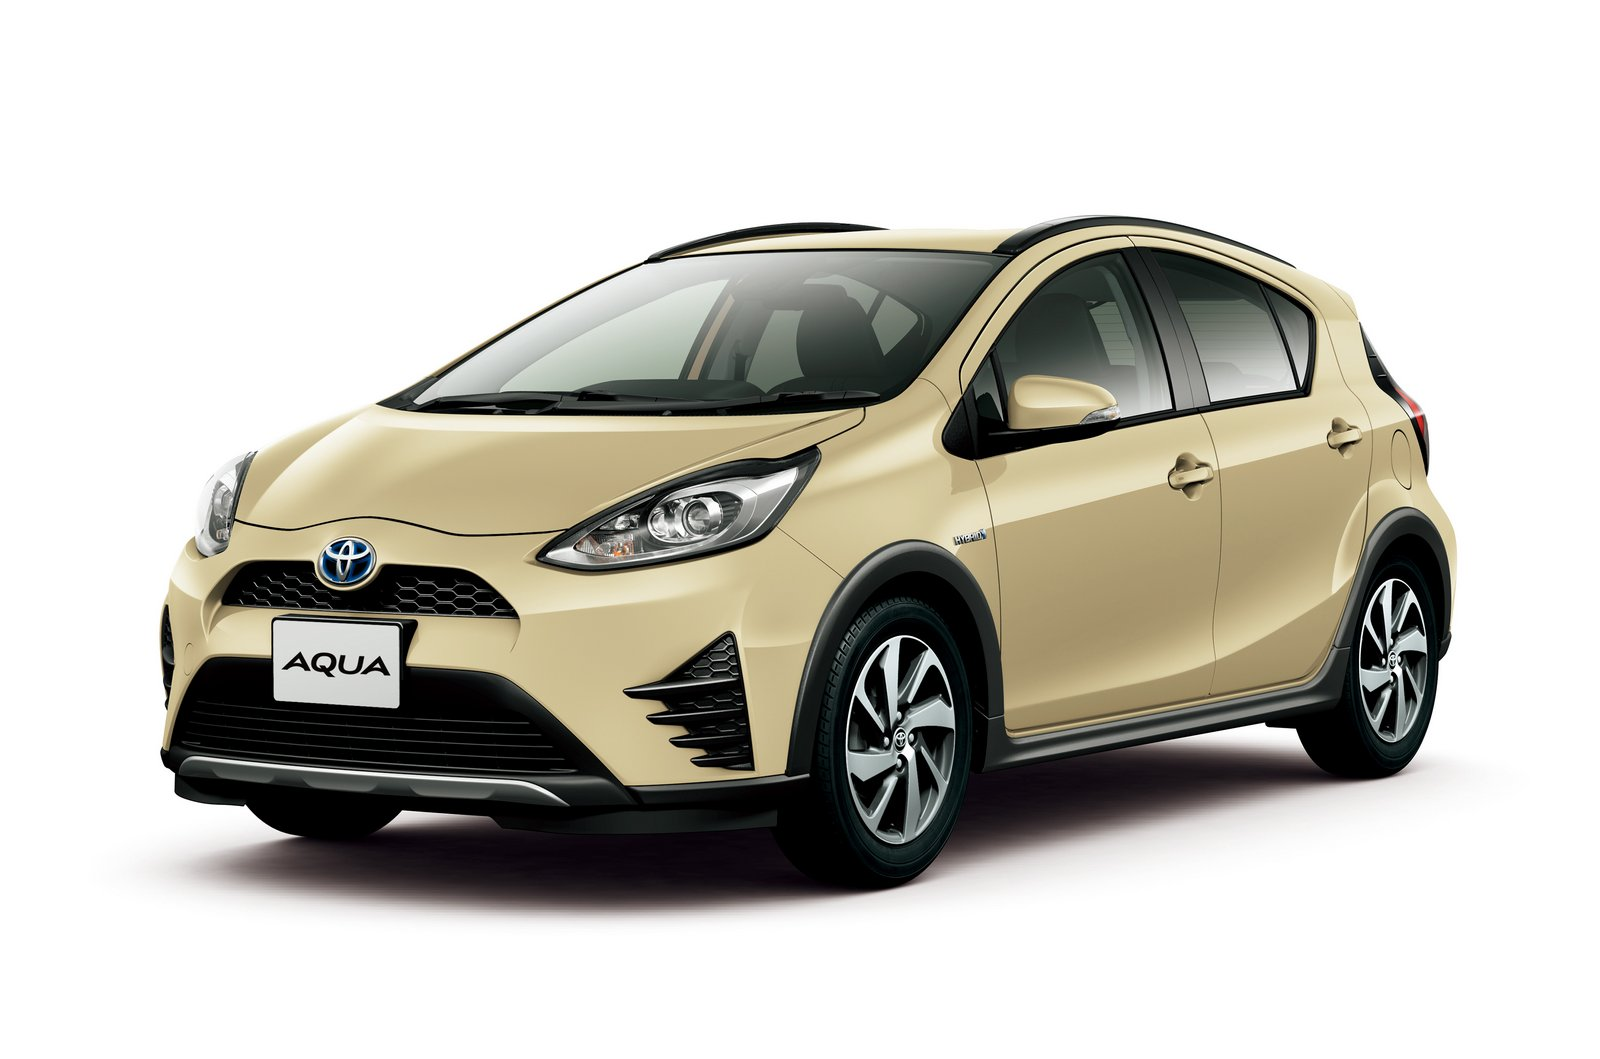 Toyota Aqua Aka The Prius C Gets A Facelift And A New